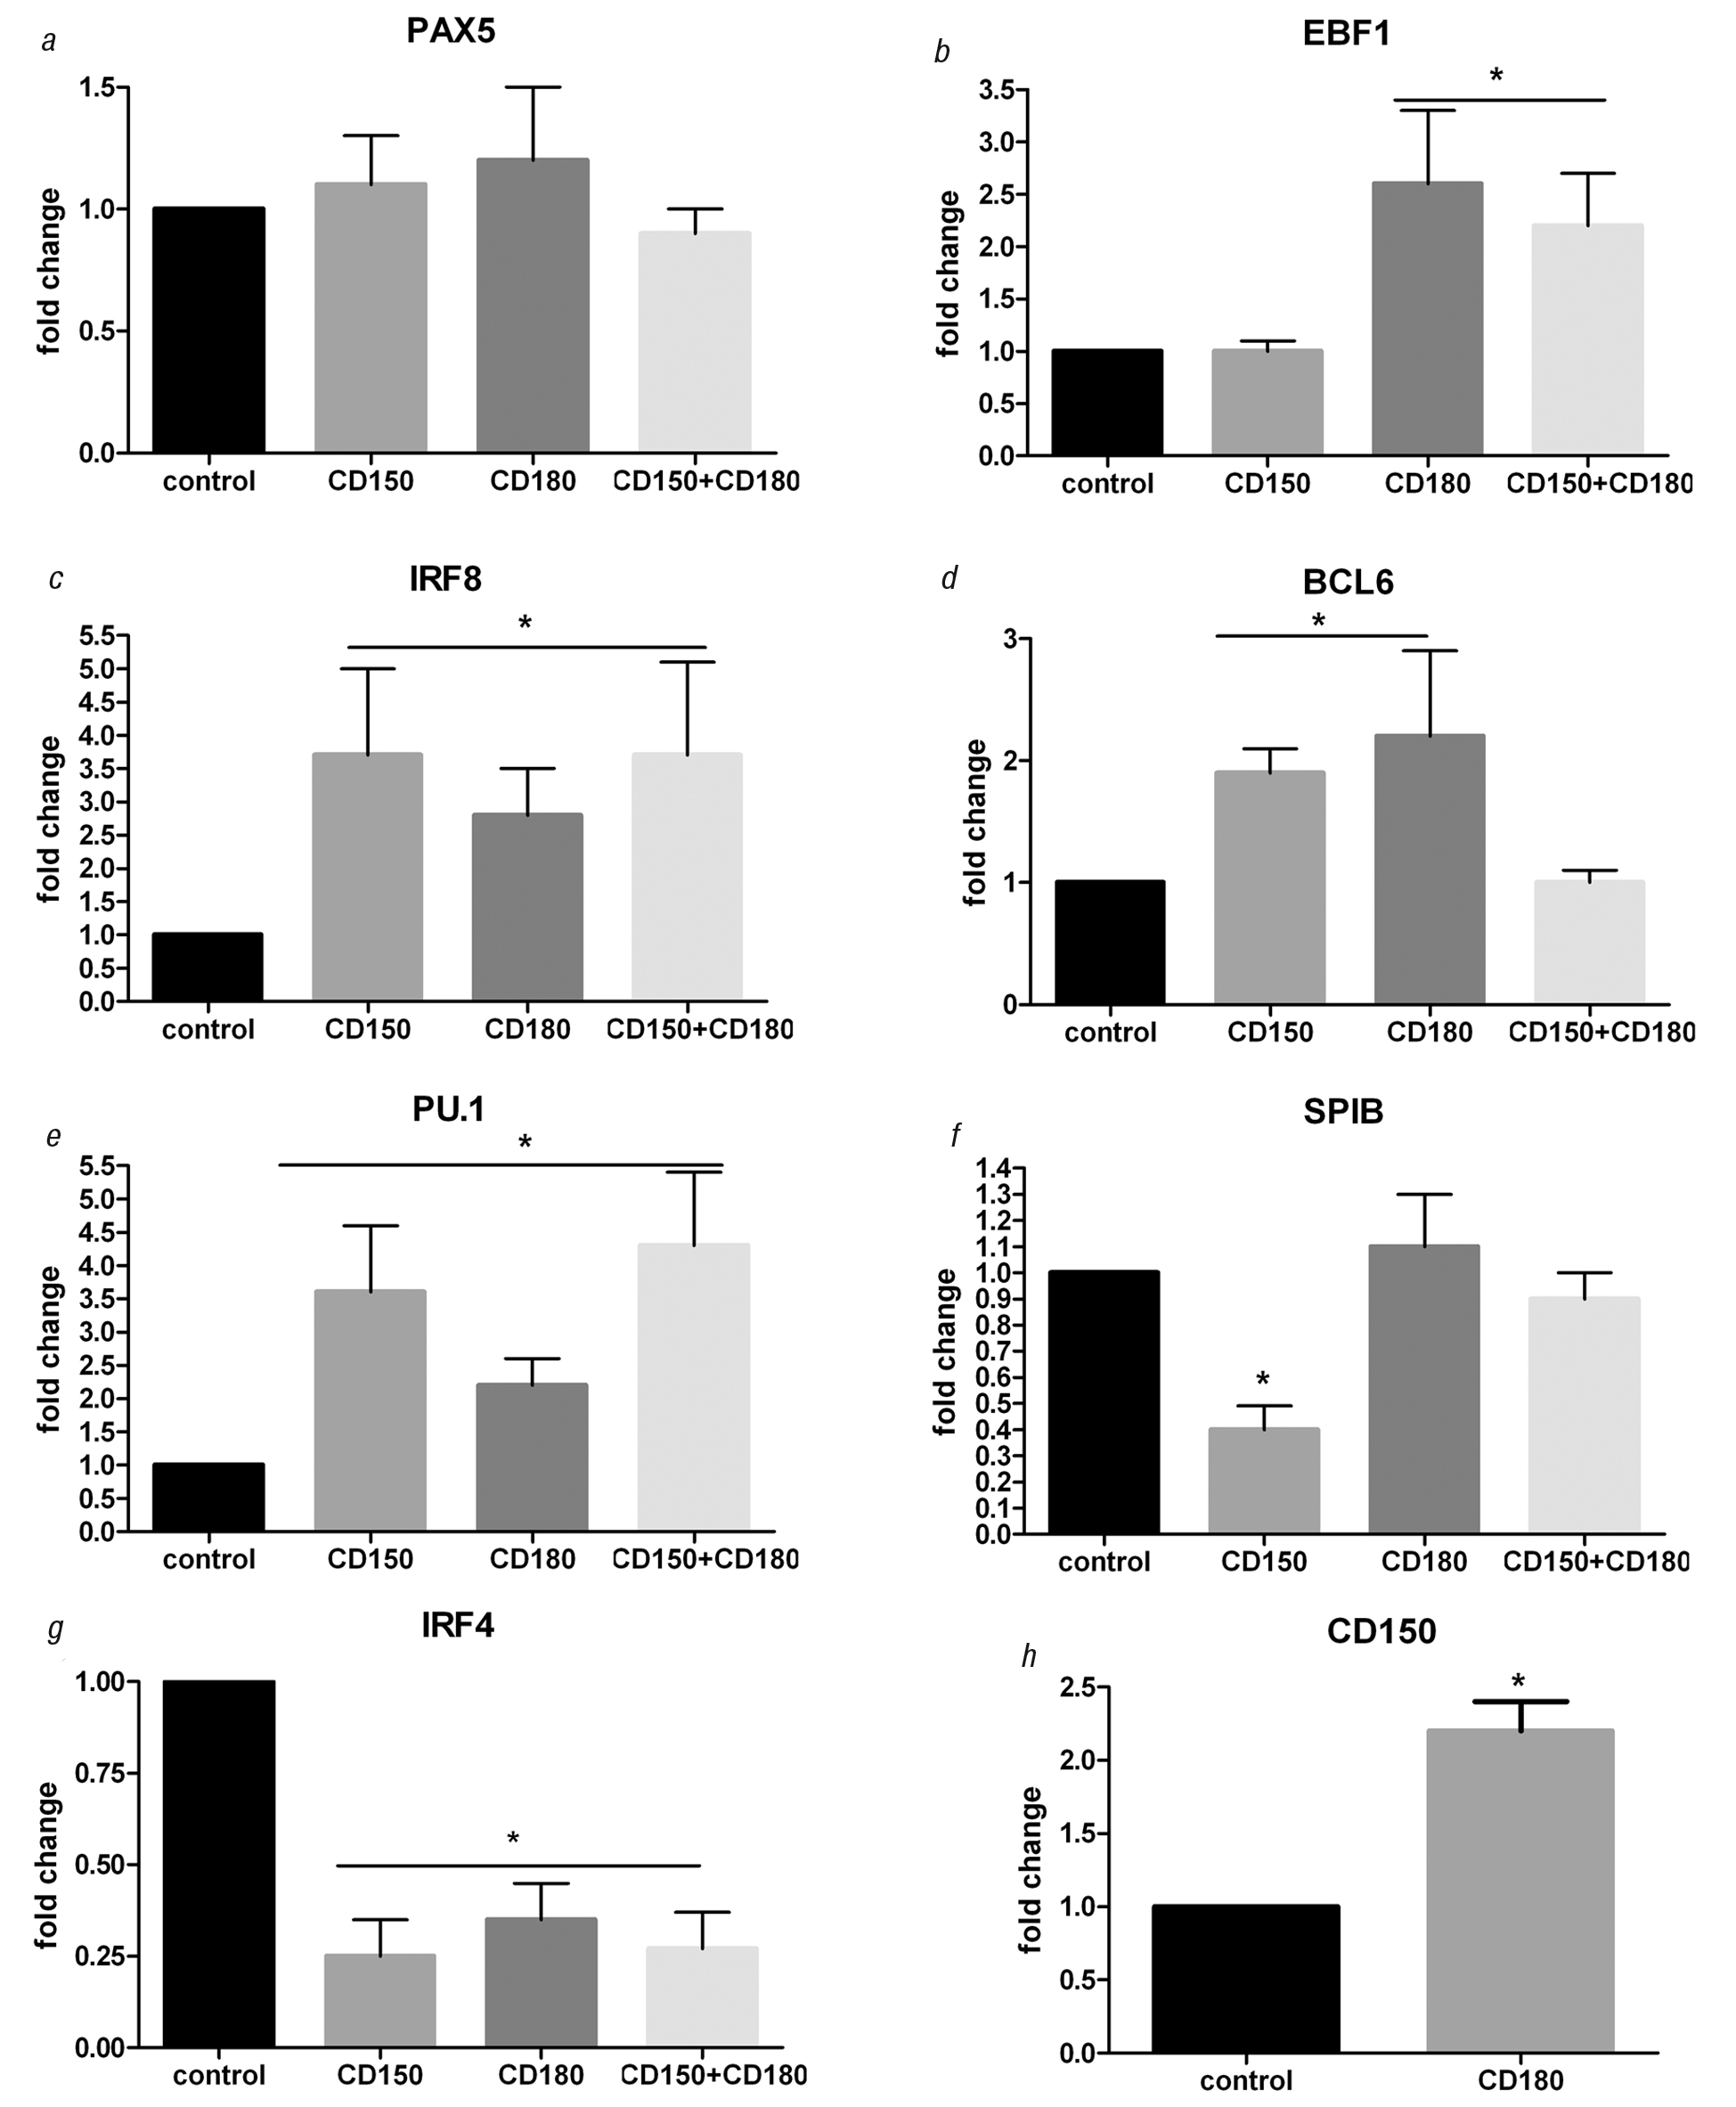 33321313 CD150 and CD180 are involved in regulation of transcription factors expression in chronic lymphocytic leukemia cells